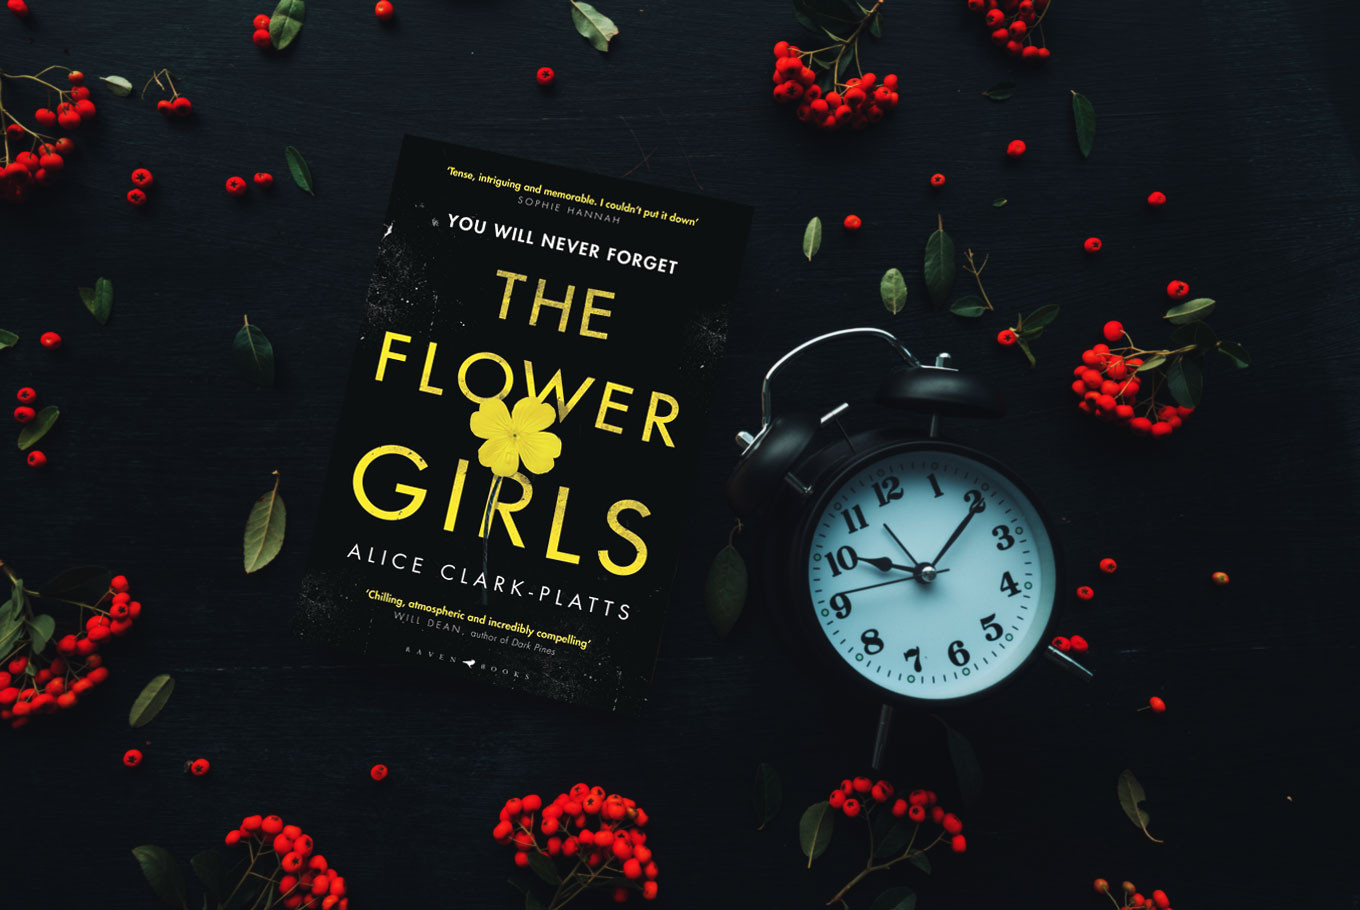 Alice Clark-Platts on 'The Flower Girls' and the beauty of